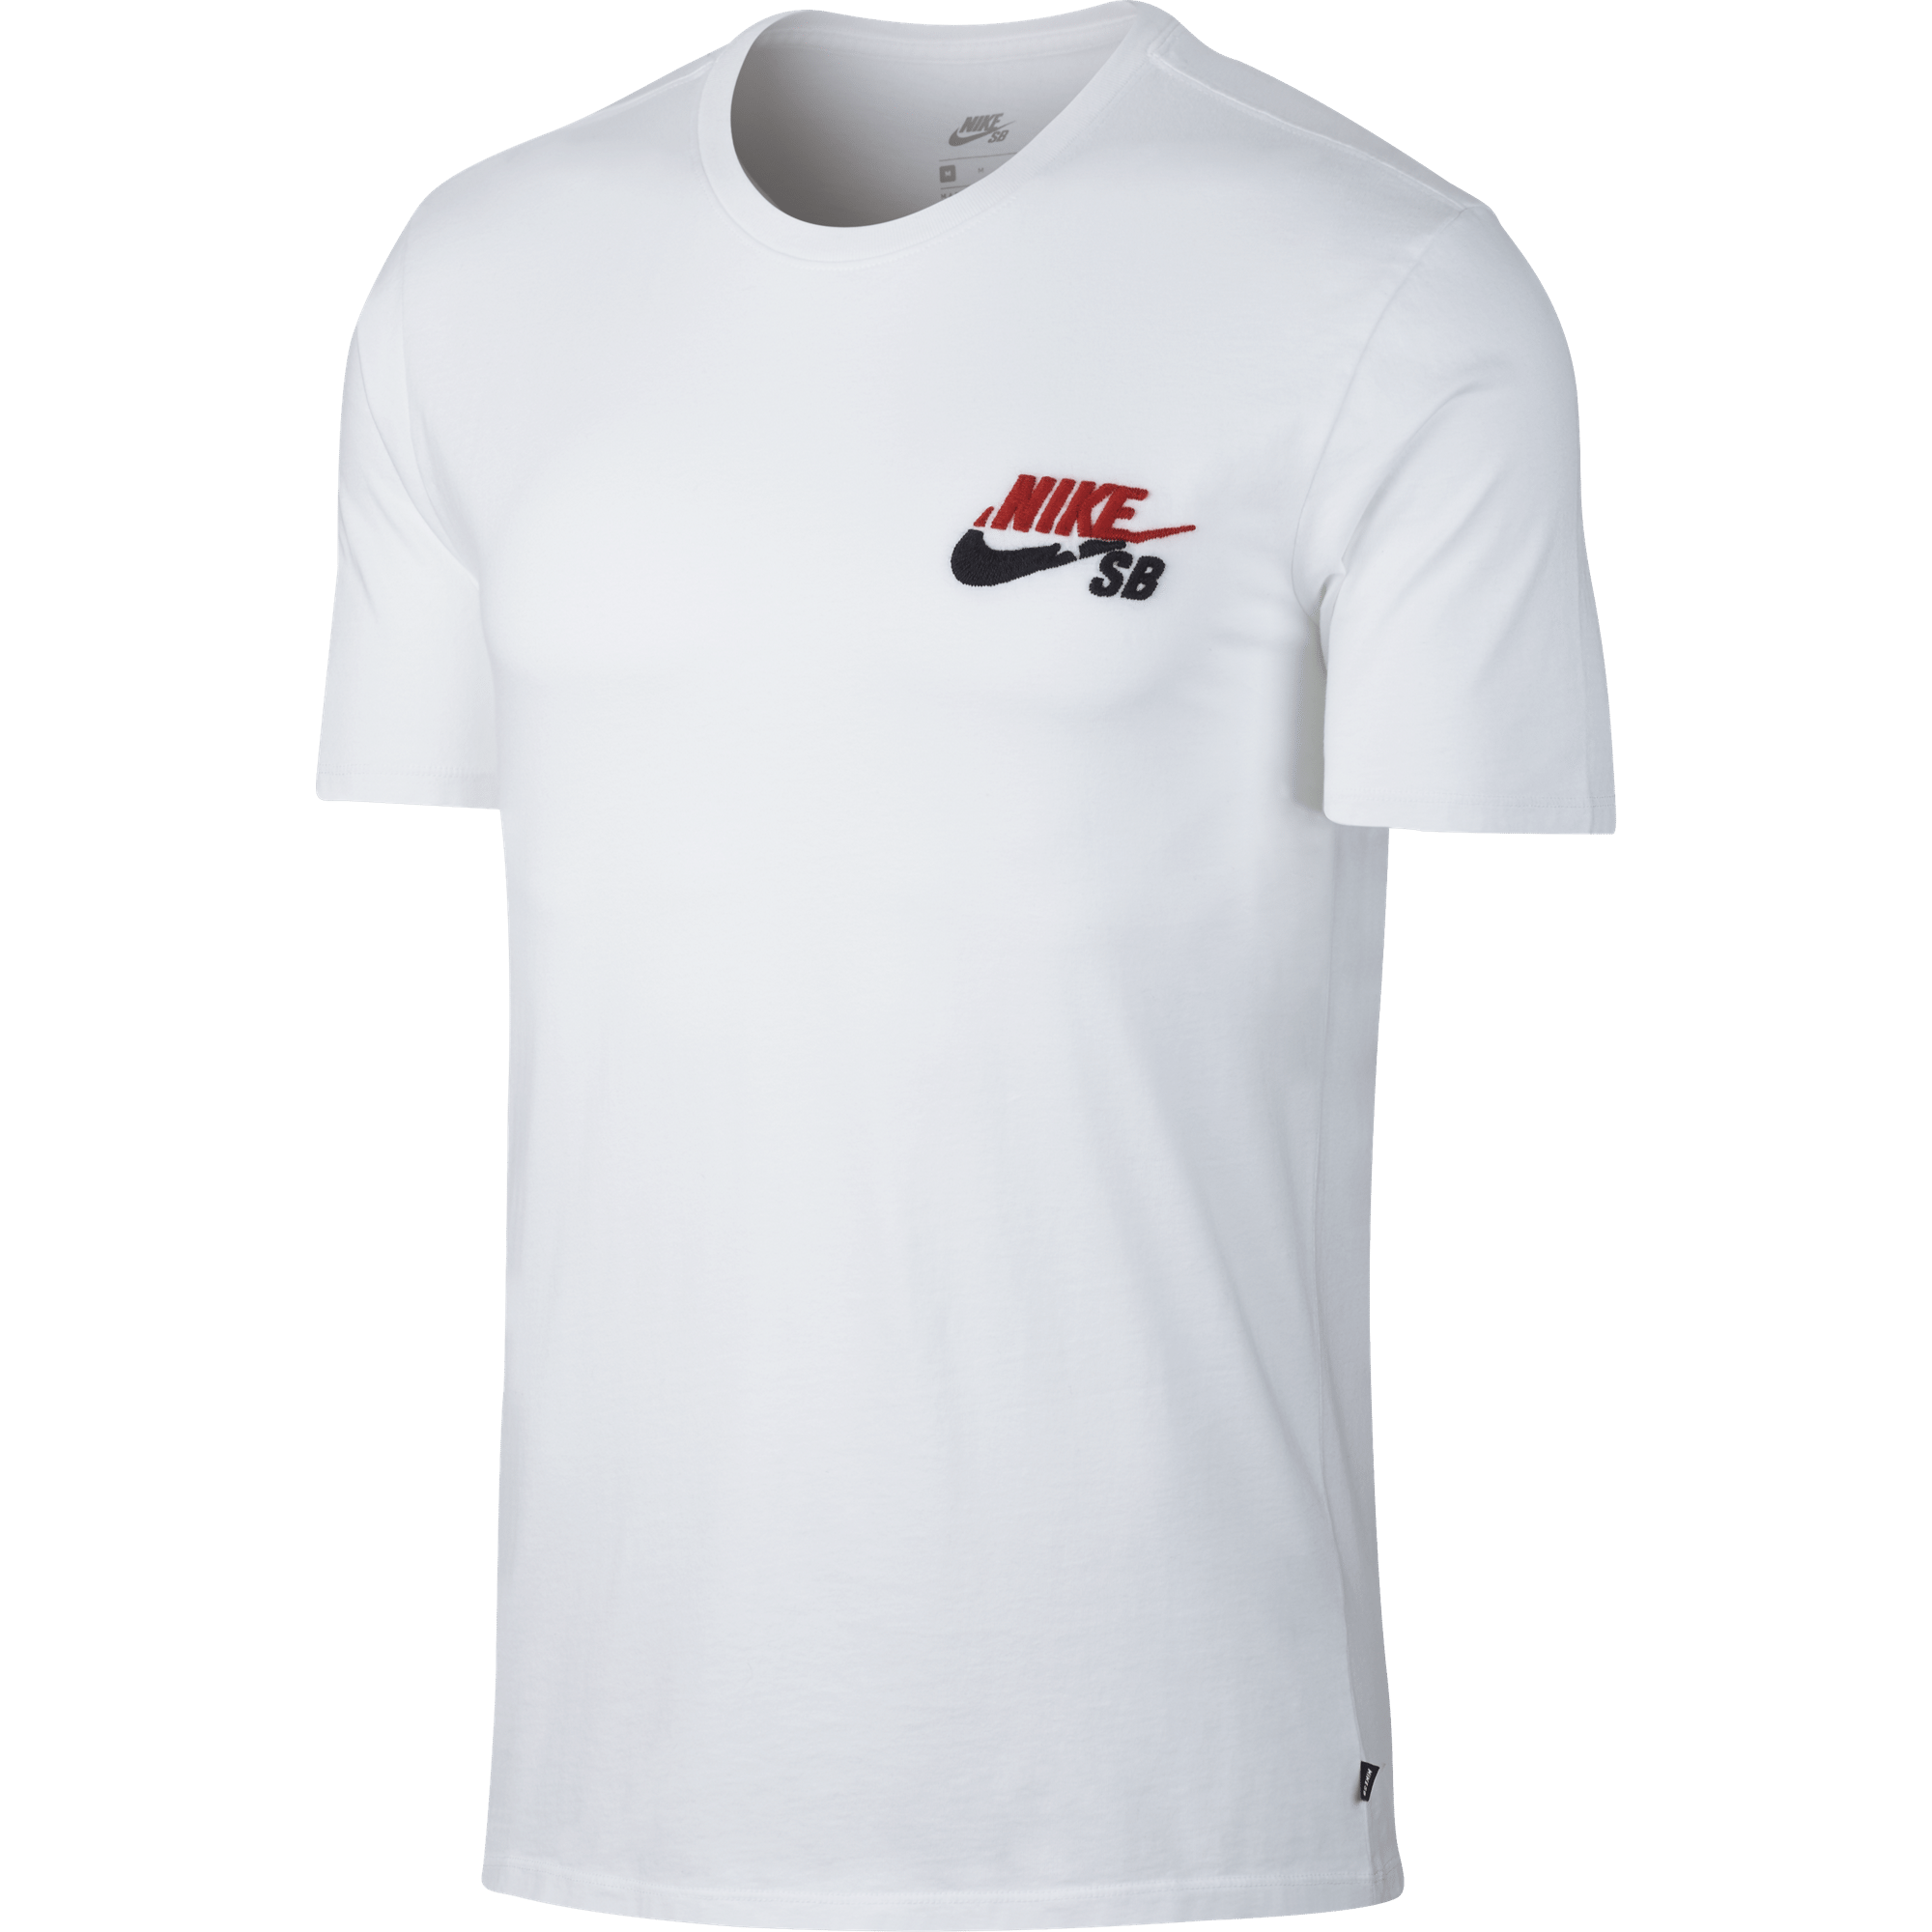 Nike sb futura t shirt white review adventure reviews for T shirt company reviews